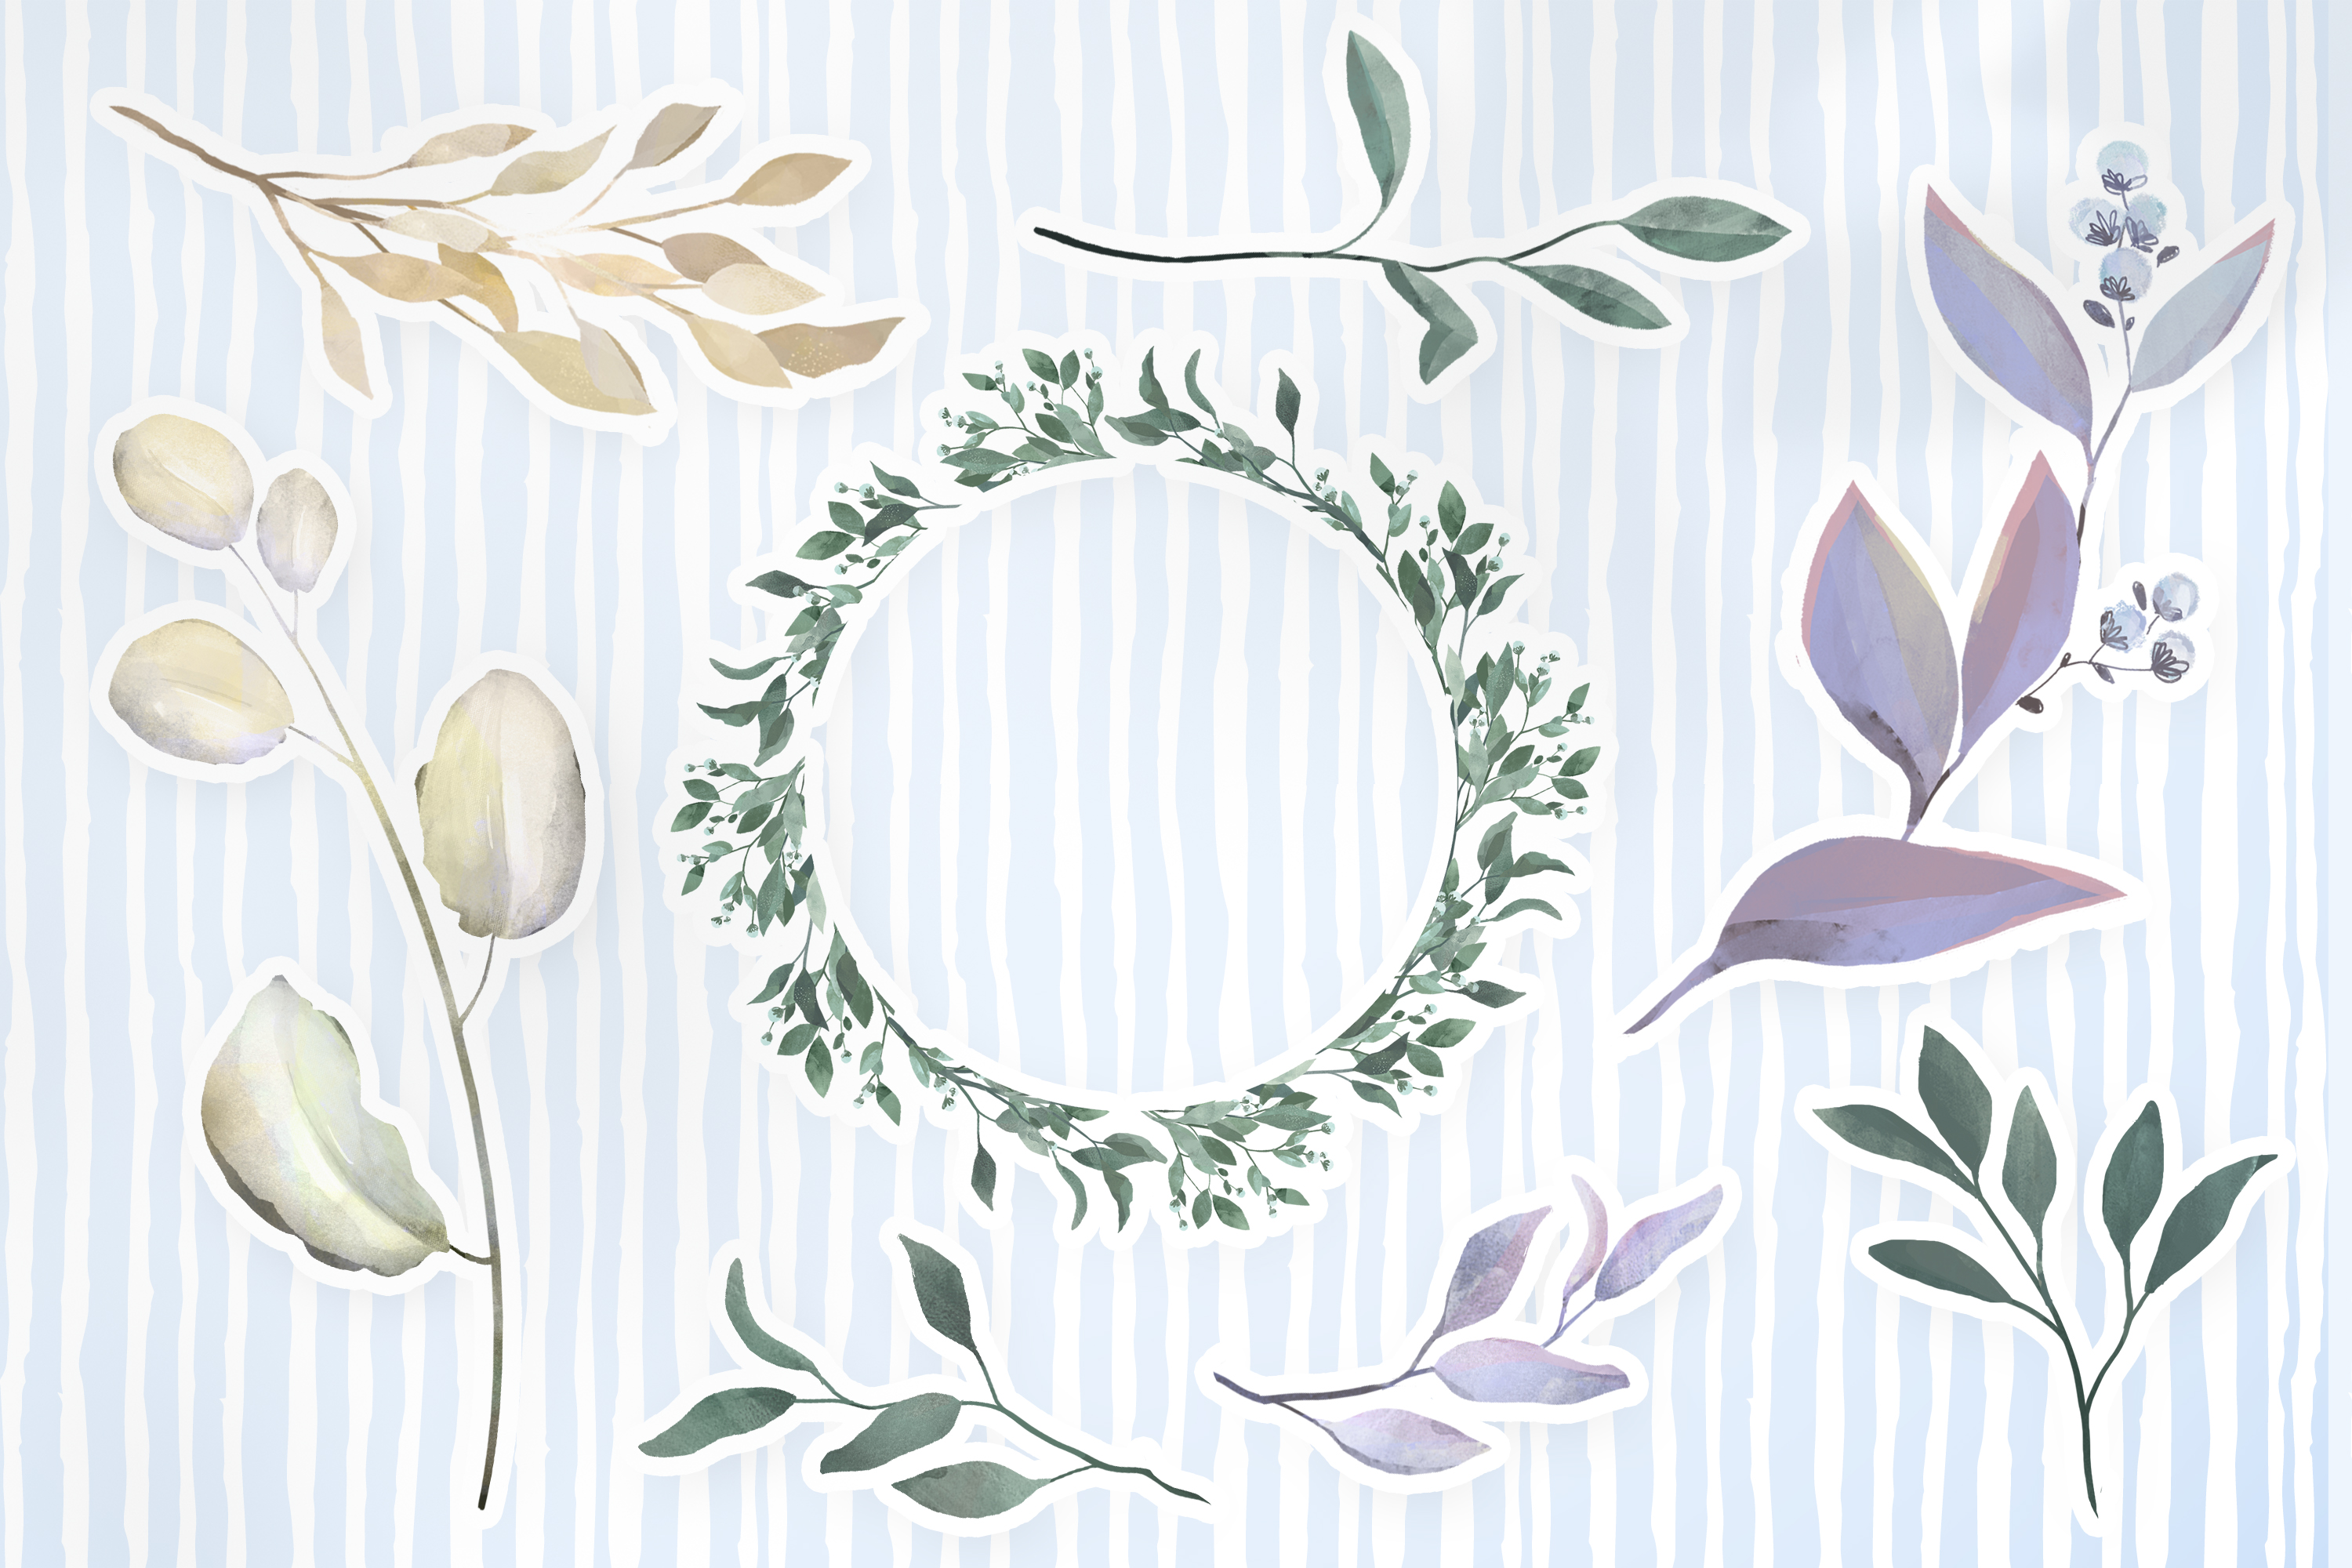 Download Free Wreaths And Leaves Illustration Set Graphic By Digi Potwor for Cricut Explore, Silhouette and other cutting machines.